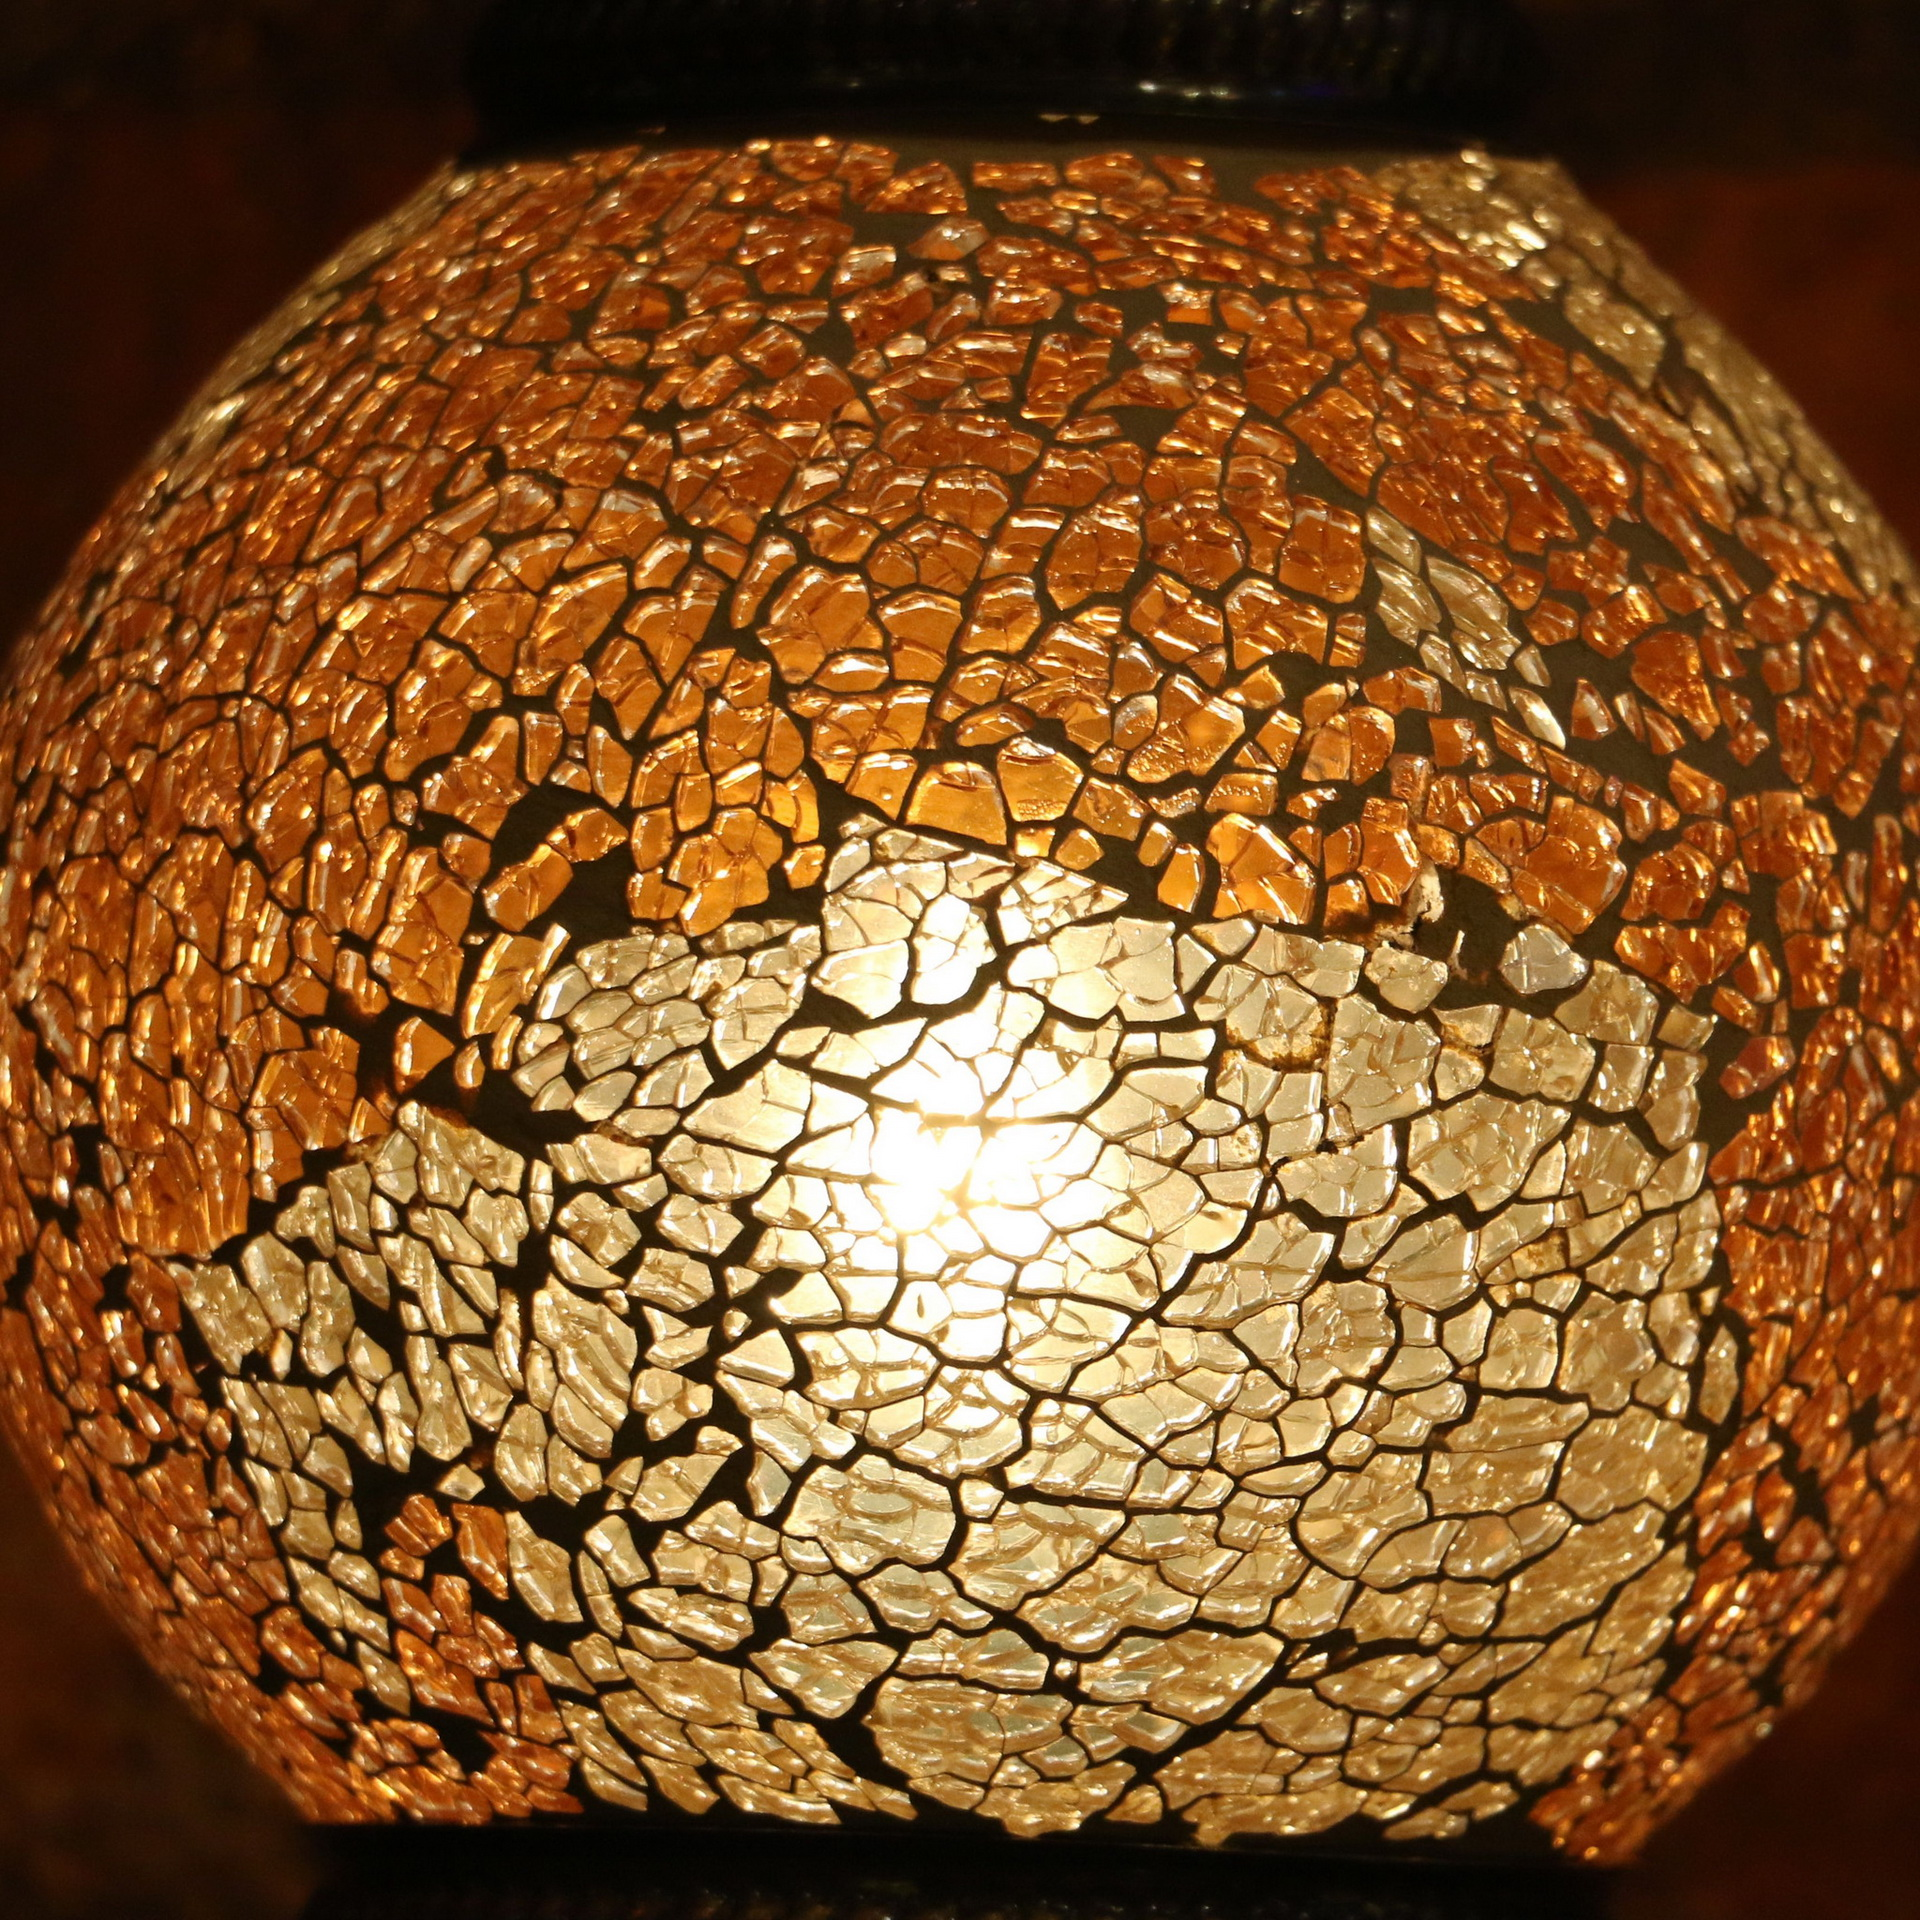 Crackle Glass Lamp Modulate Illumination To Your Home Space